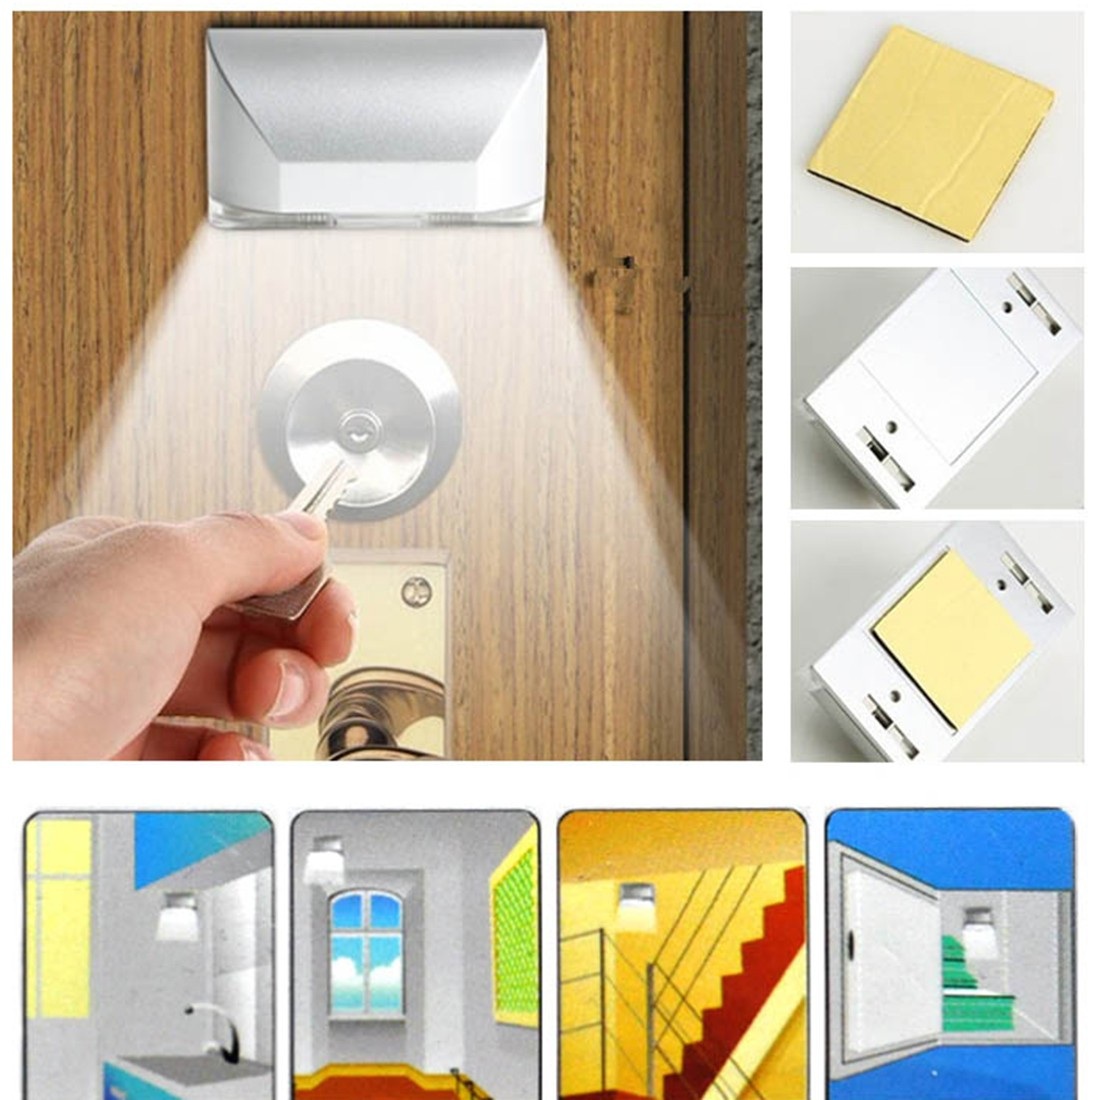 Wireless Auto Infrared Sensor Motion Detector Keyhole 4 LED Light lamp Night Lights Motion Light Ambient Sensor